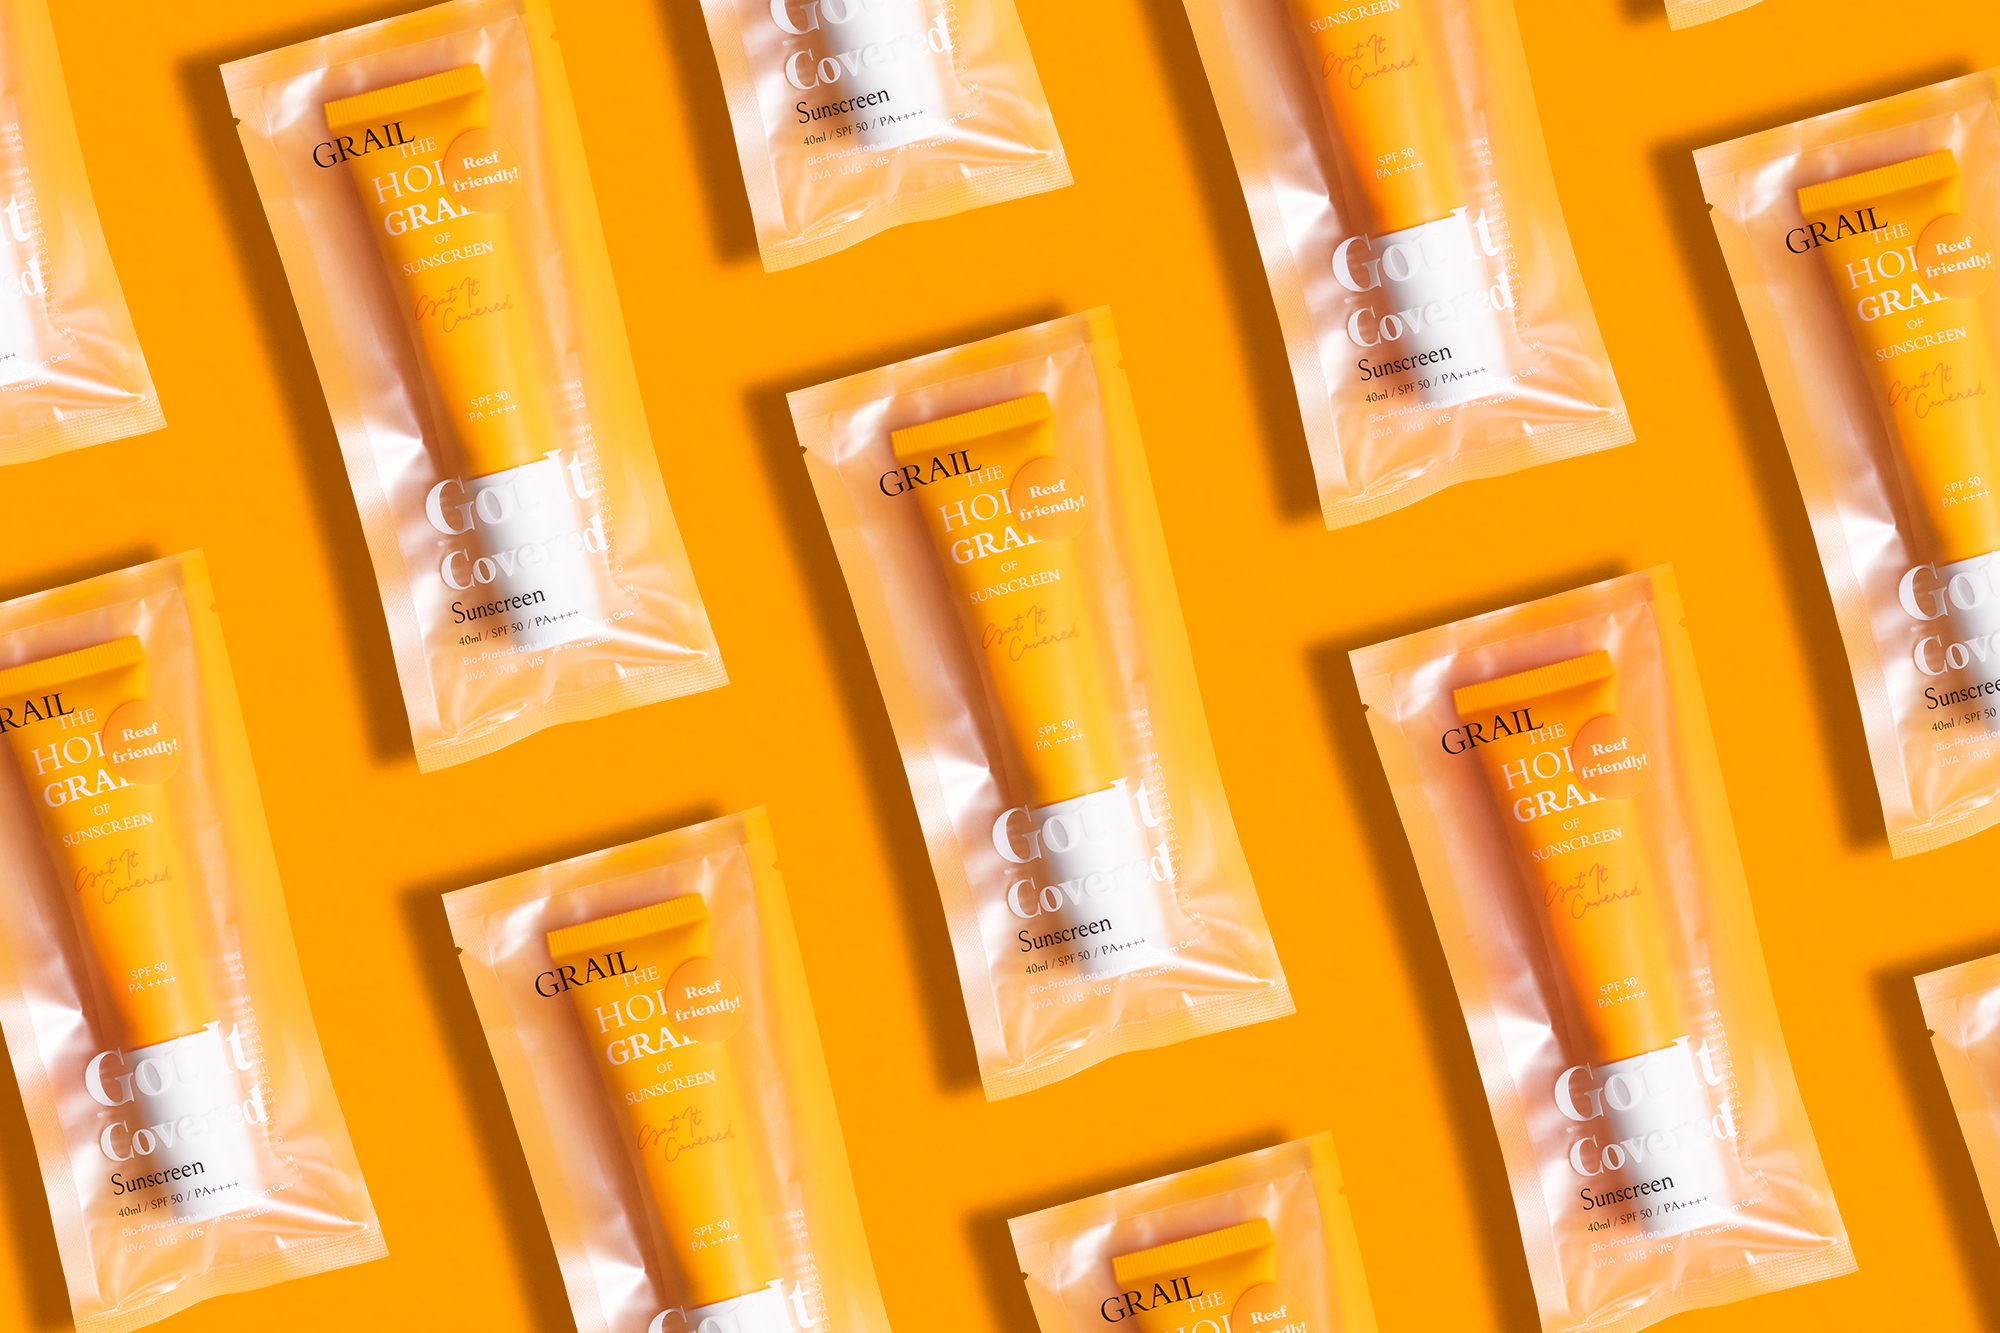 When It Comes To Sunscreen, Grail Has Got It Covered